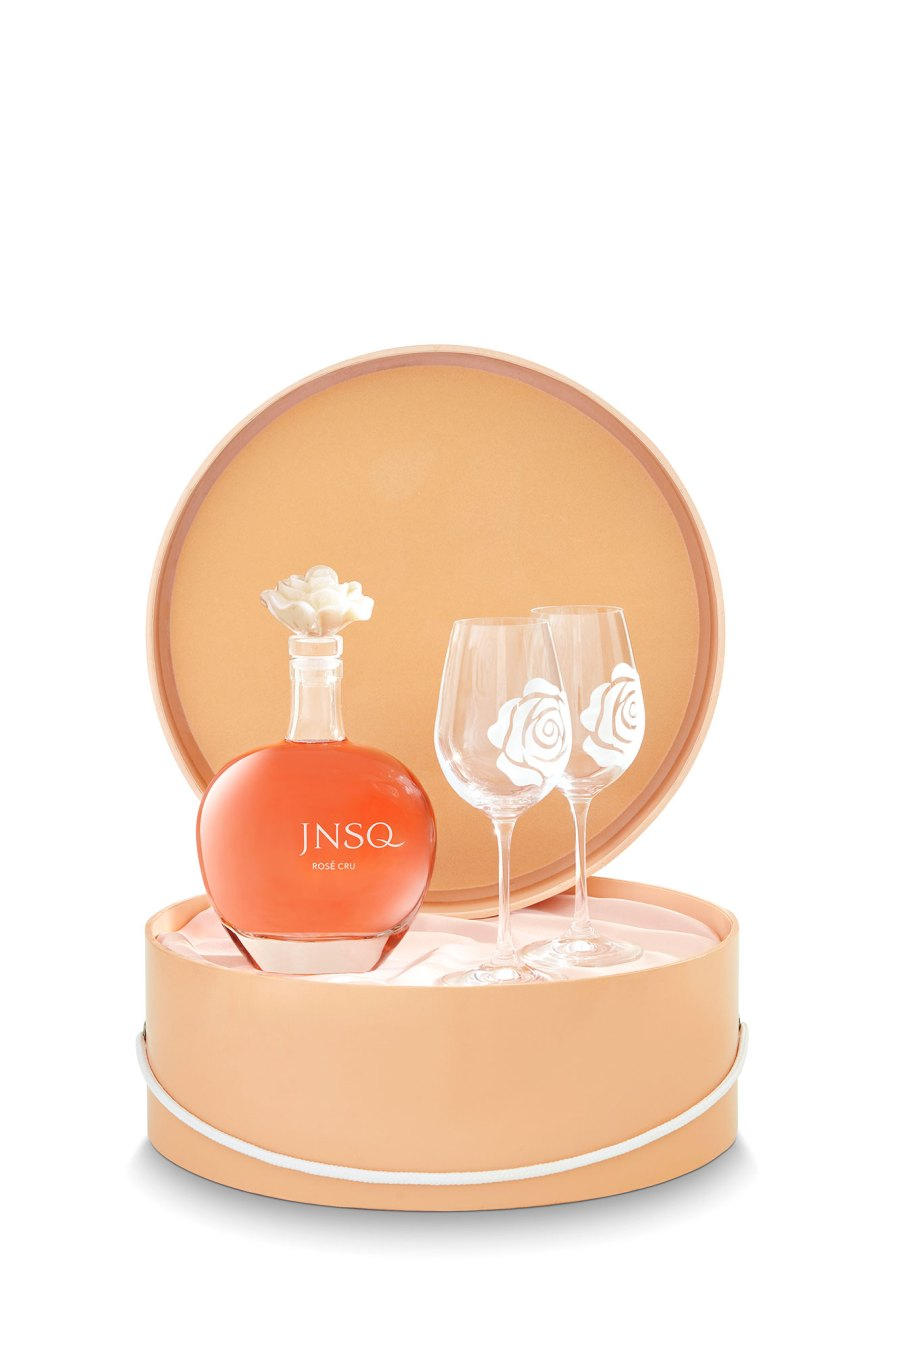 JNSQ Hat Box Mother's Day Gift Guide